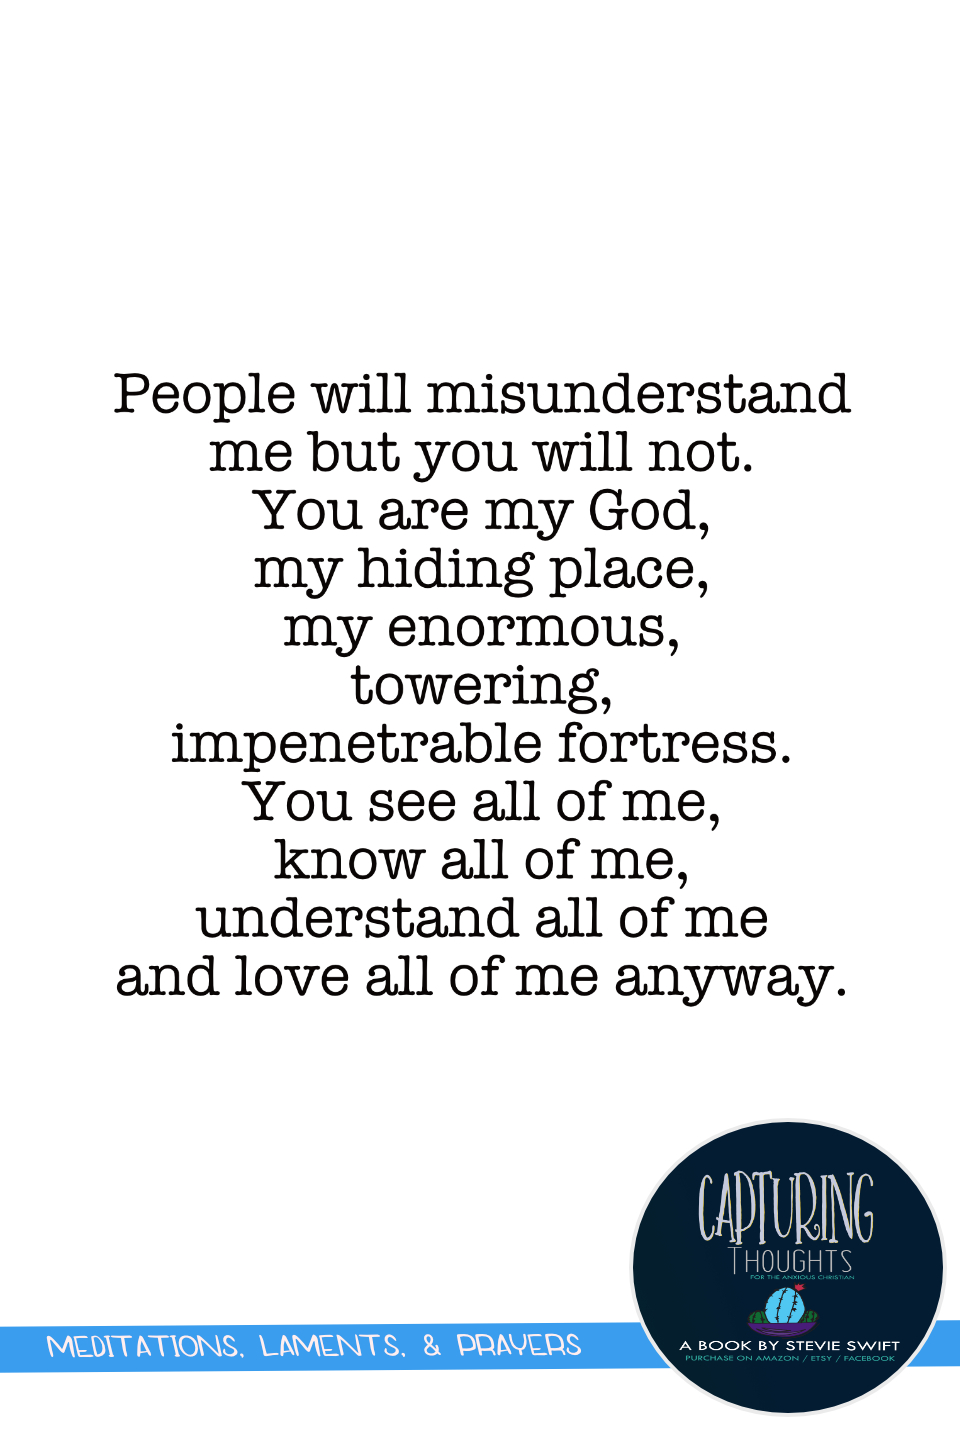 People will misunderstand me but you will not. You are my God, my hiding place, my enormous, towering, impenetrable fortress. you see all of me, know all of me, understand all of me and love all of me anyway.